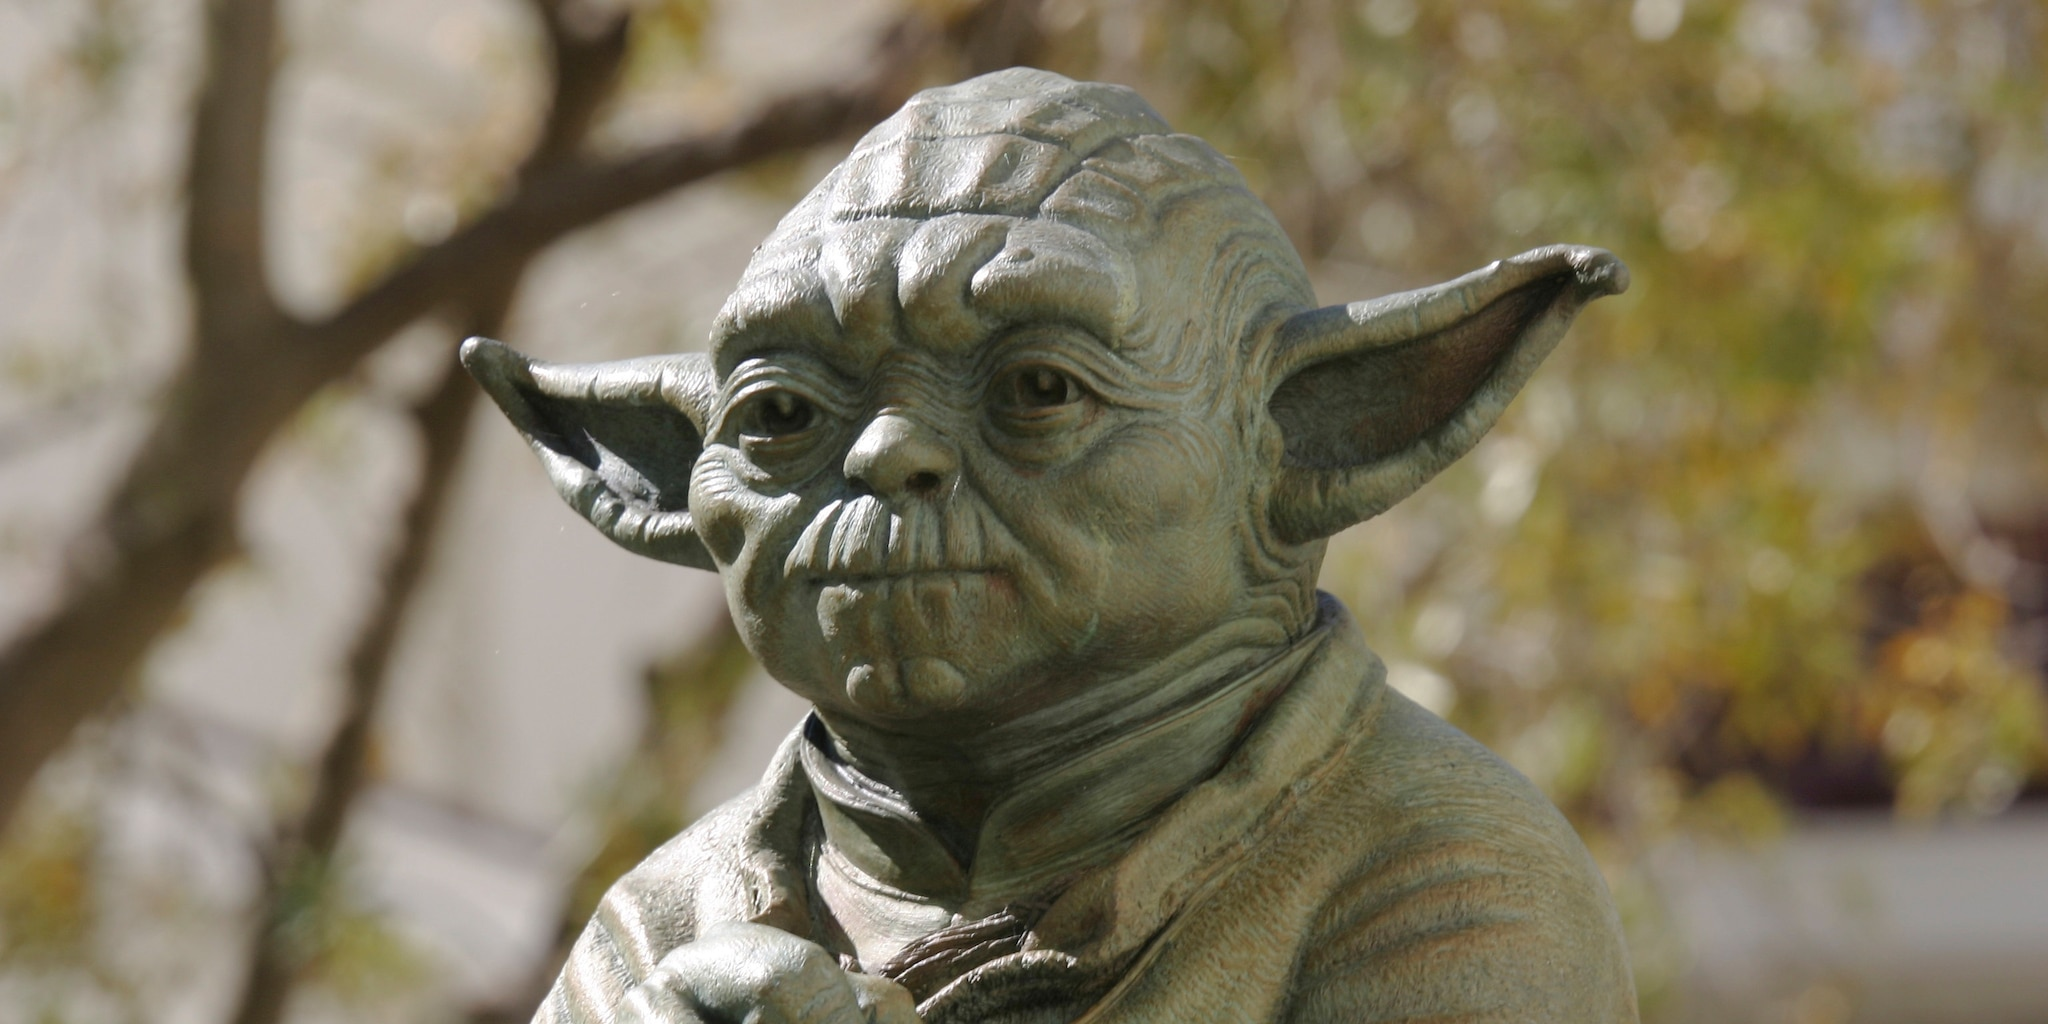 Yoda's head on the fountain at Lucasfilm's campus